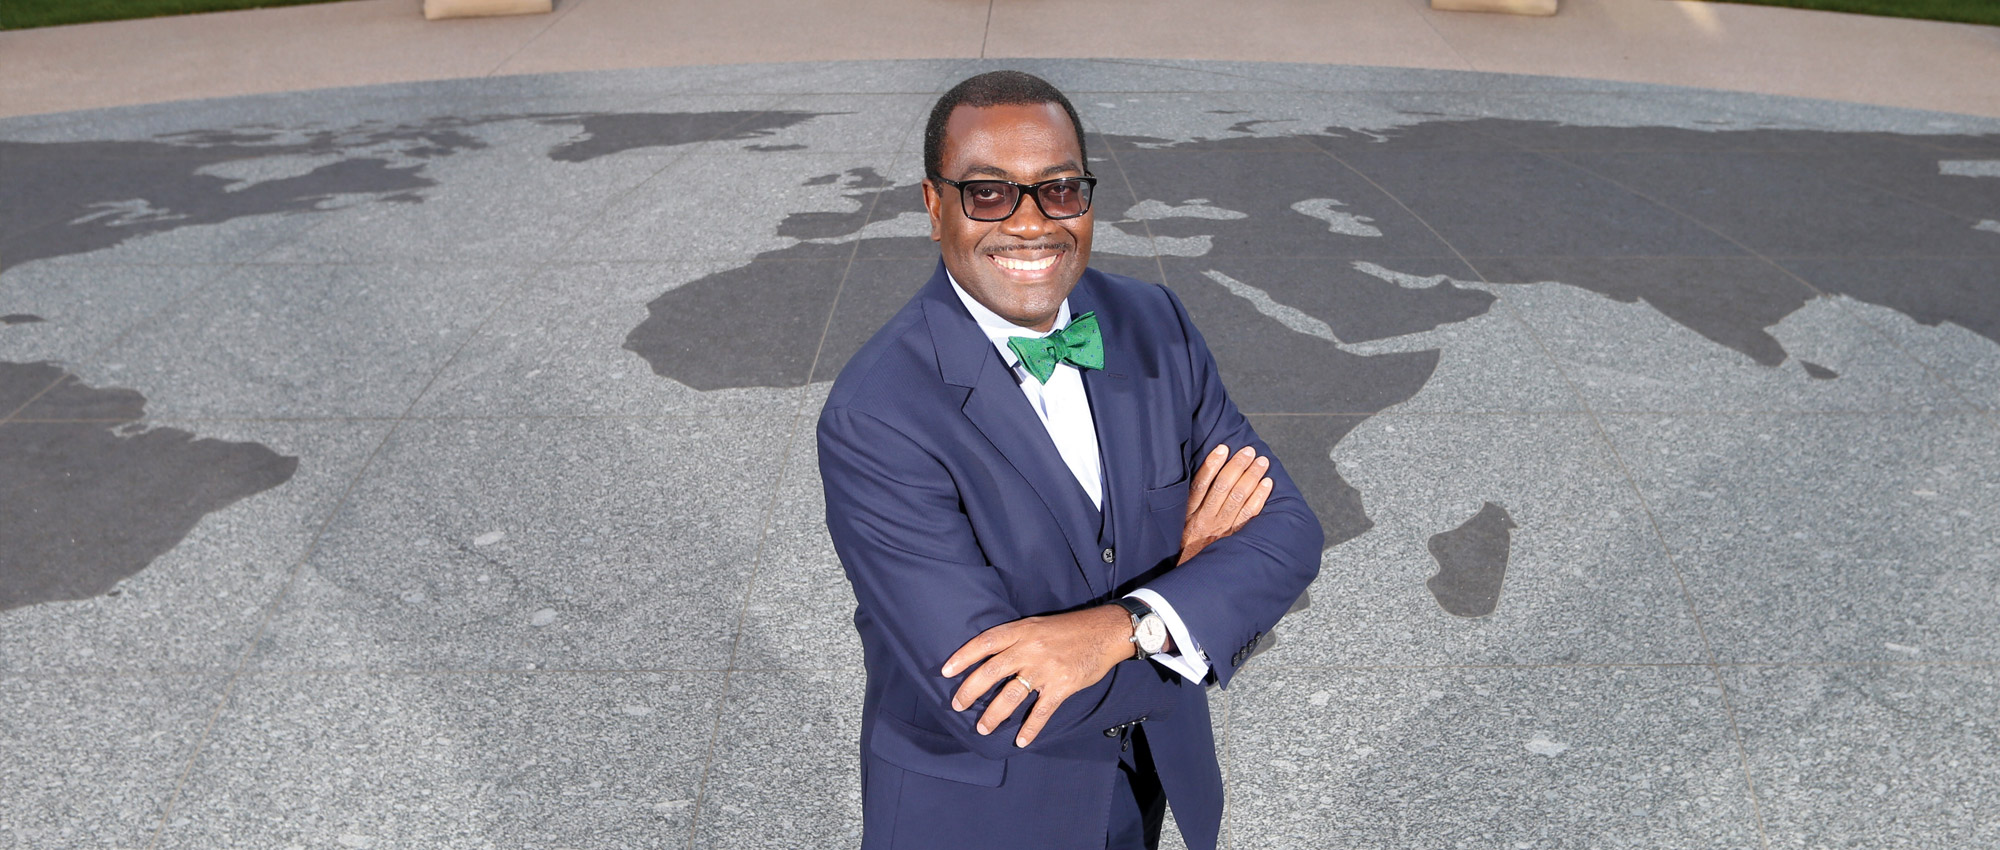 Akinwumi Ayodeji Adesina, president of the African Development Bank Group, stands with crossed arms on top of a stone world map